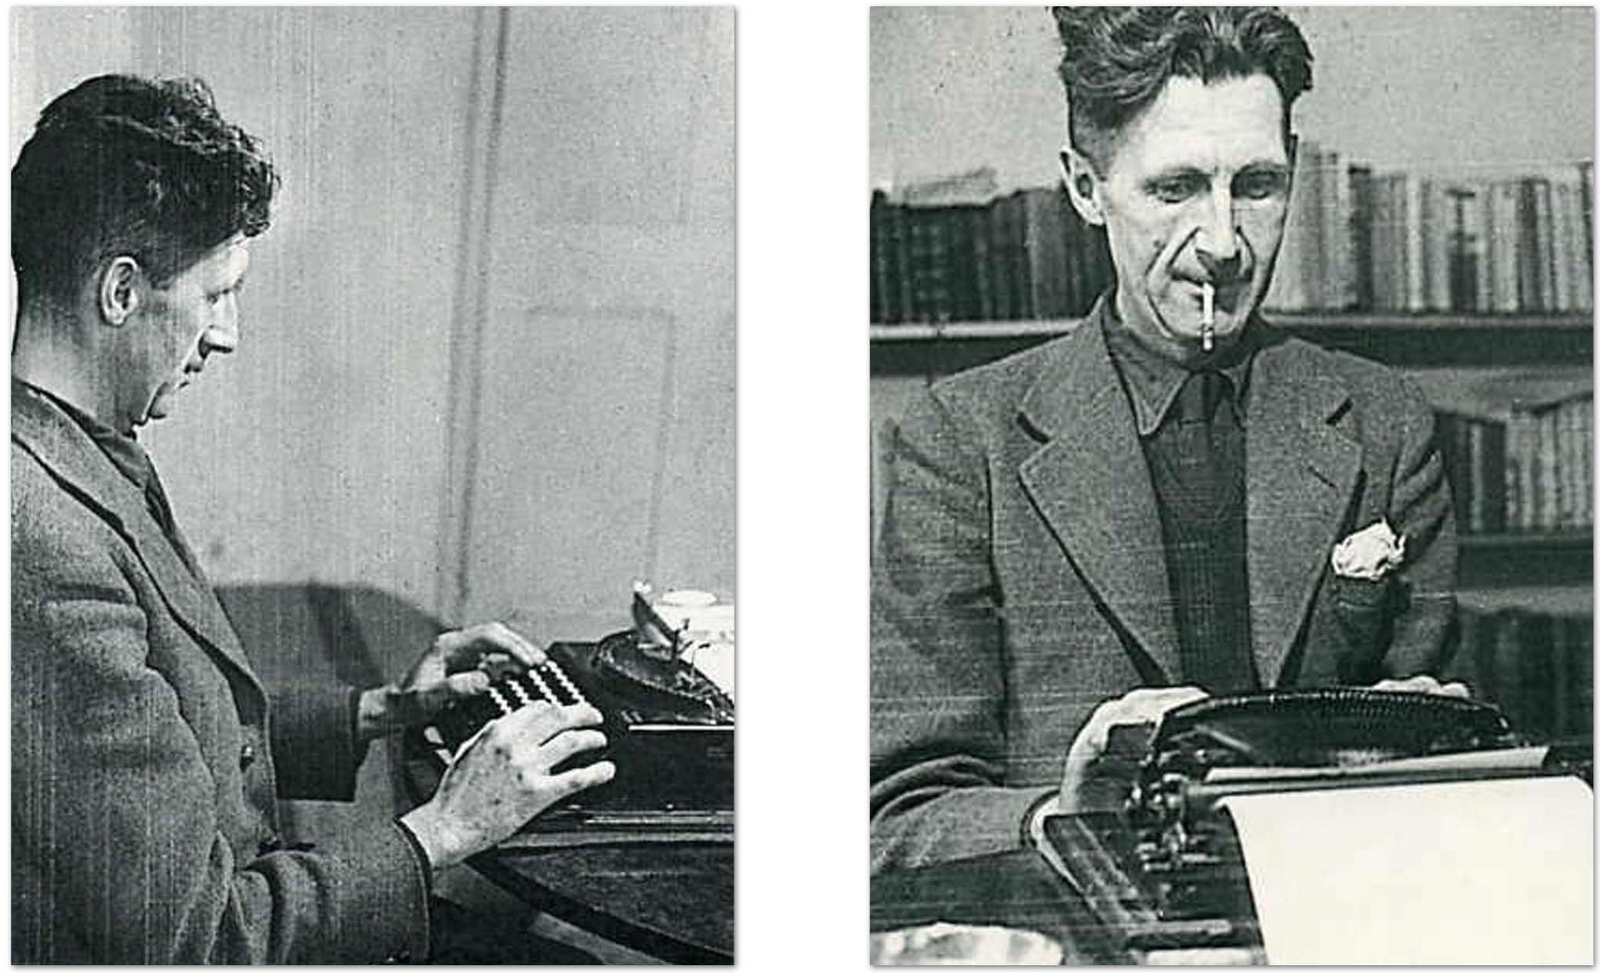 george orwell essay on politics and the english language  george orwell essay on politics and the english language